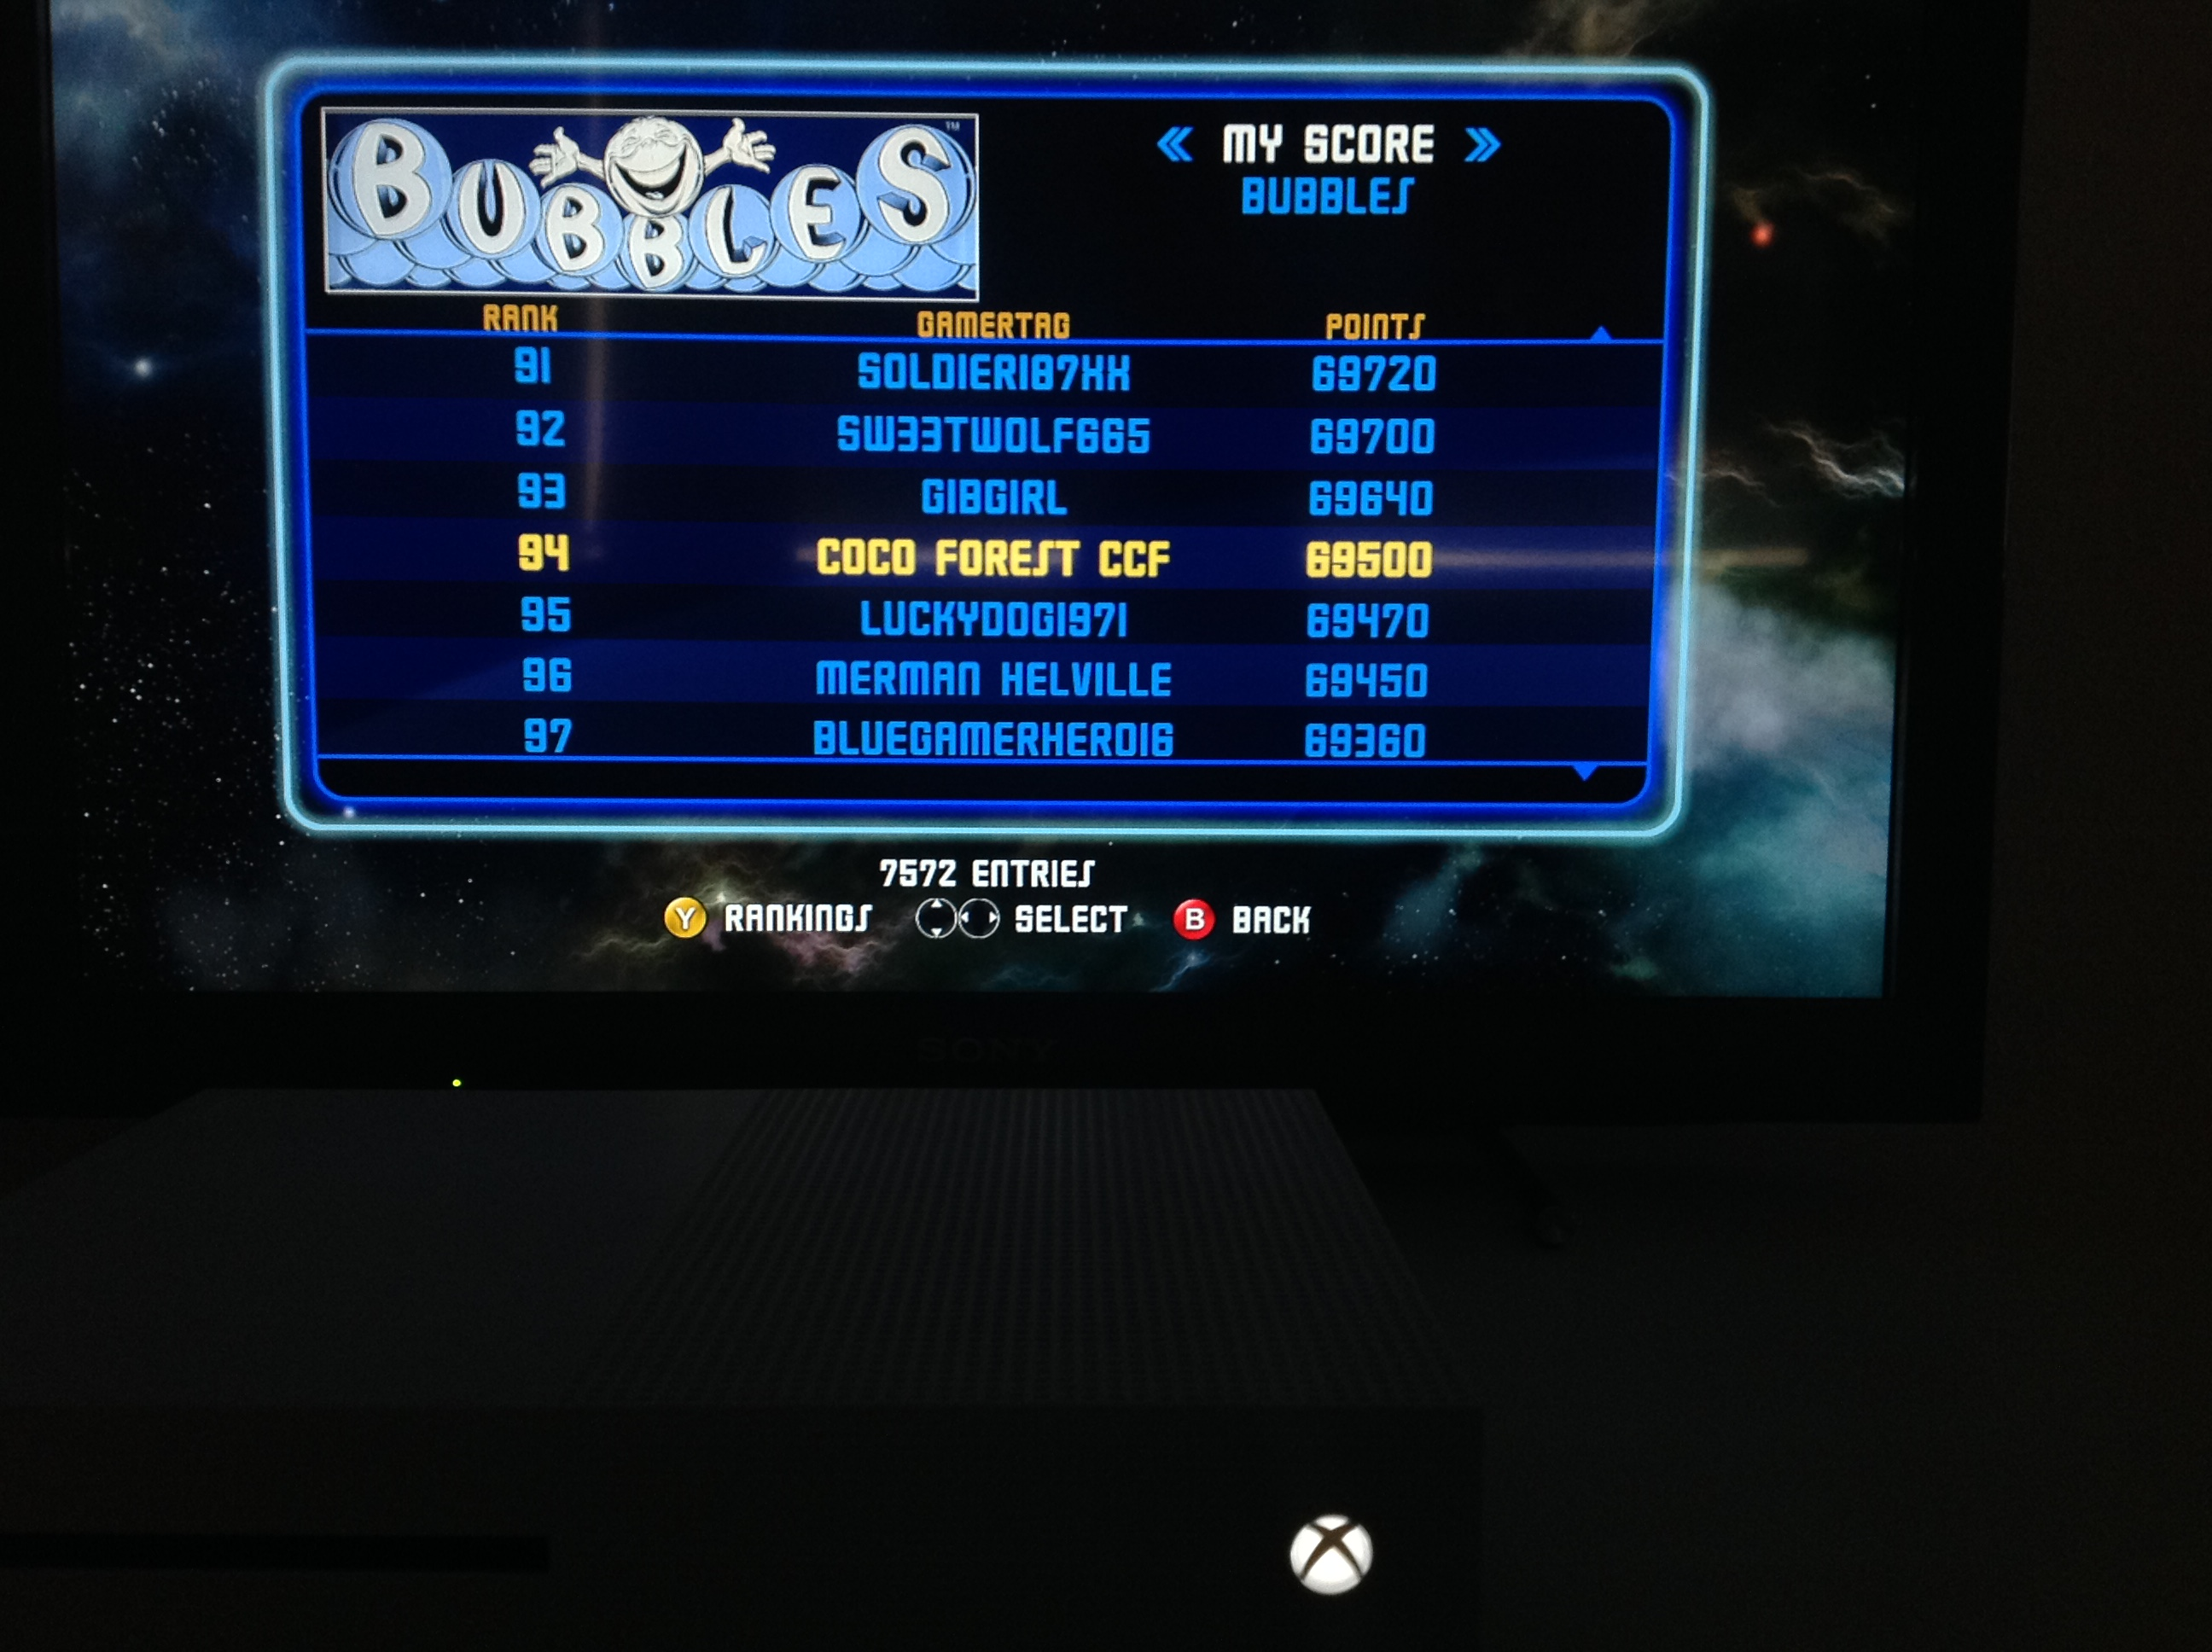 CoCoForest: Midway Arcade Origins: Bubbles (Xbox 360) 69,500 points on 2019-05-25 12:57:53